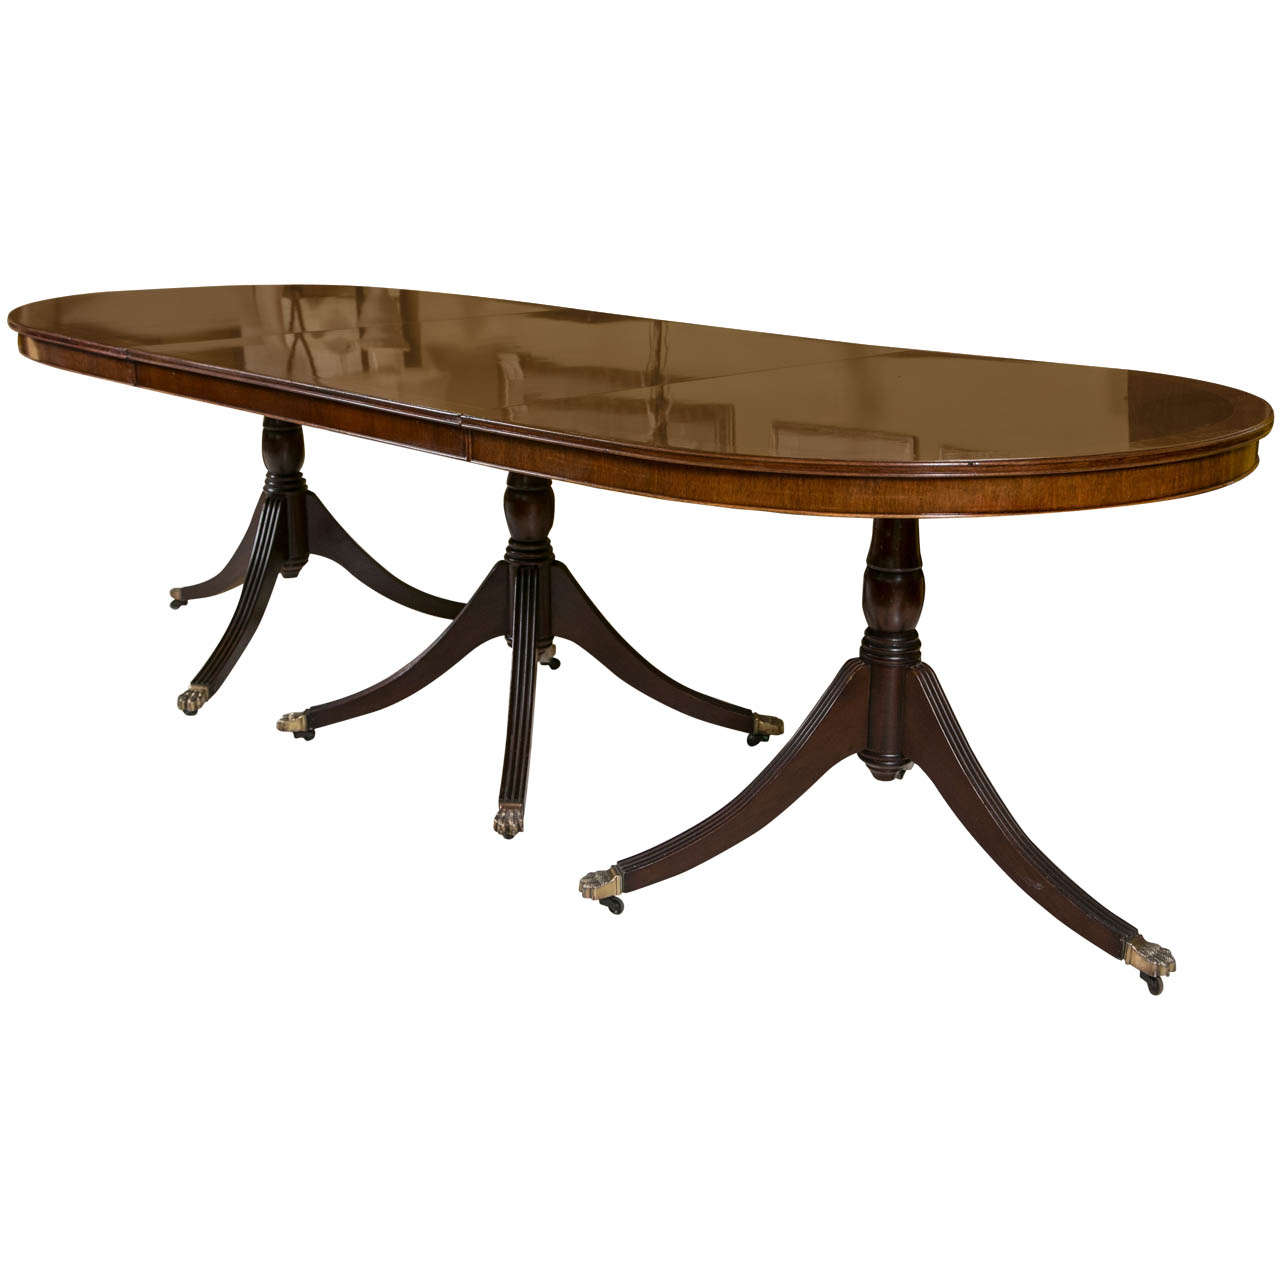 An English Georgian Style Triple Pedestal Banded Mahogany Dining